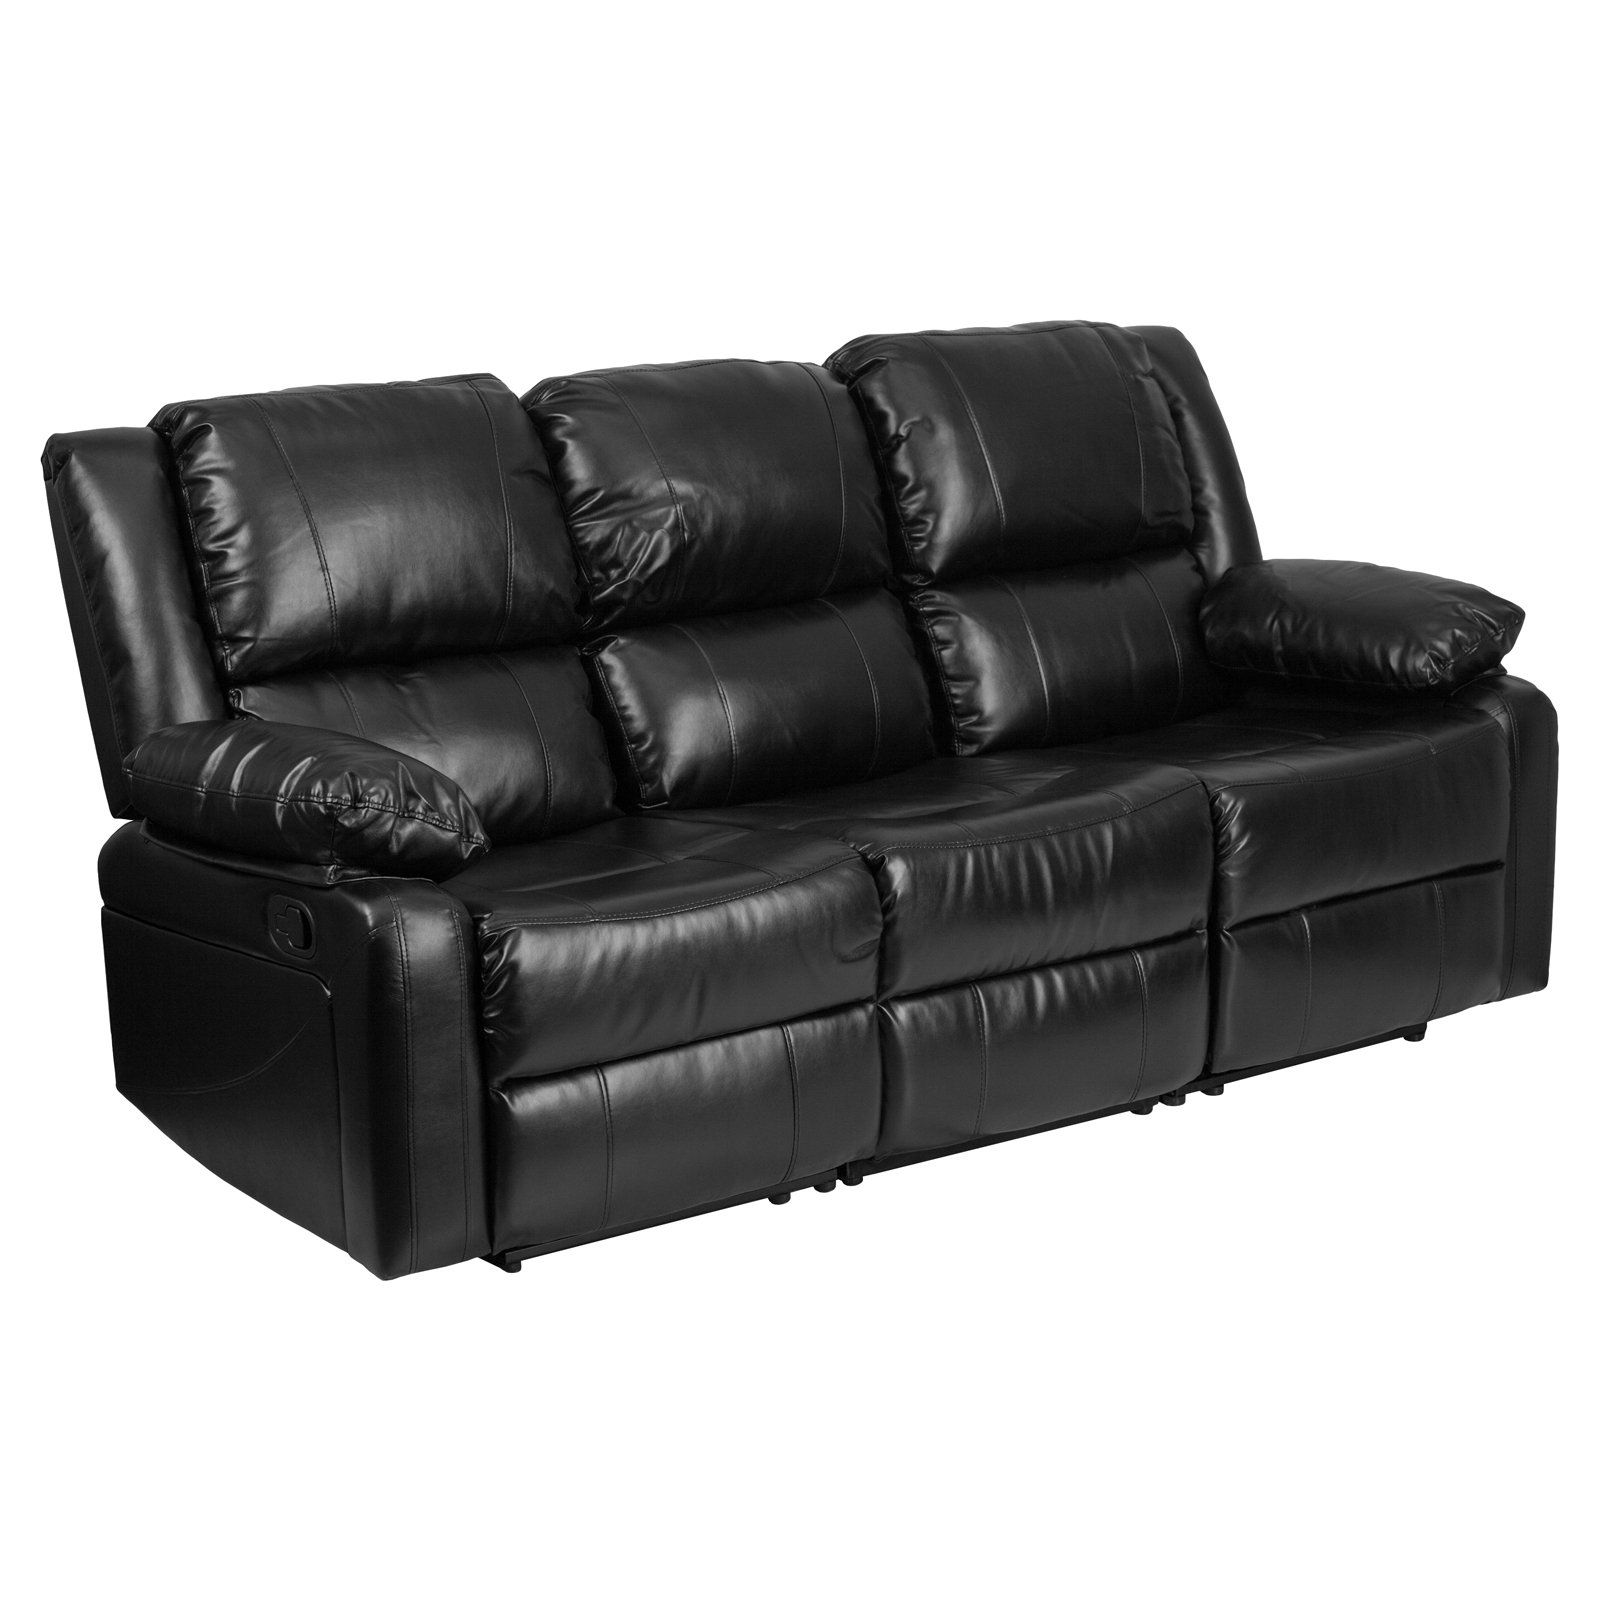 Flash Furniture Harmony Series Black Leather Sofa with Two Built-In